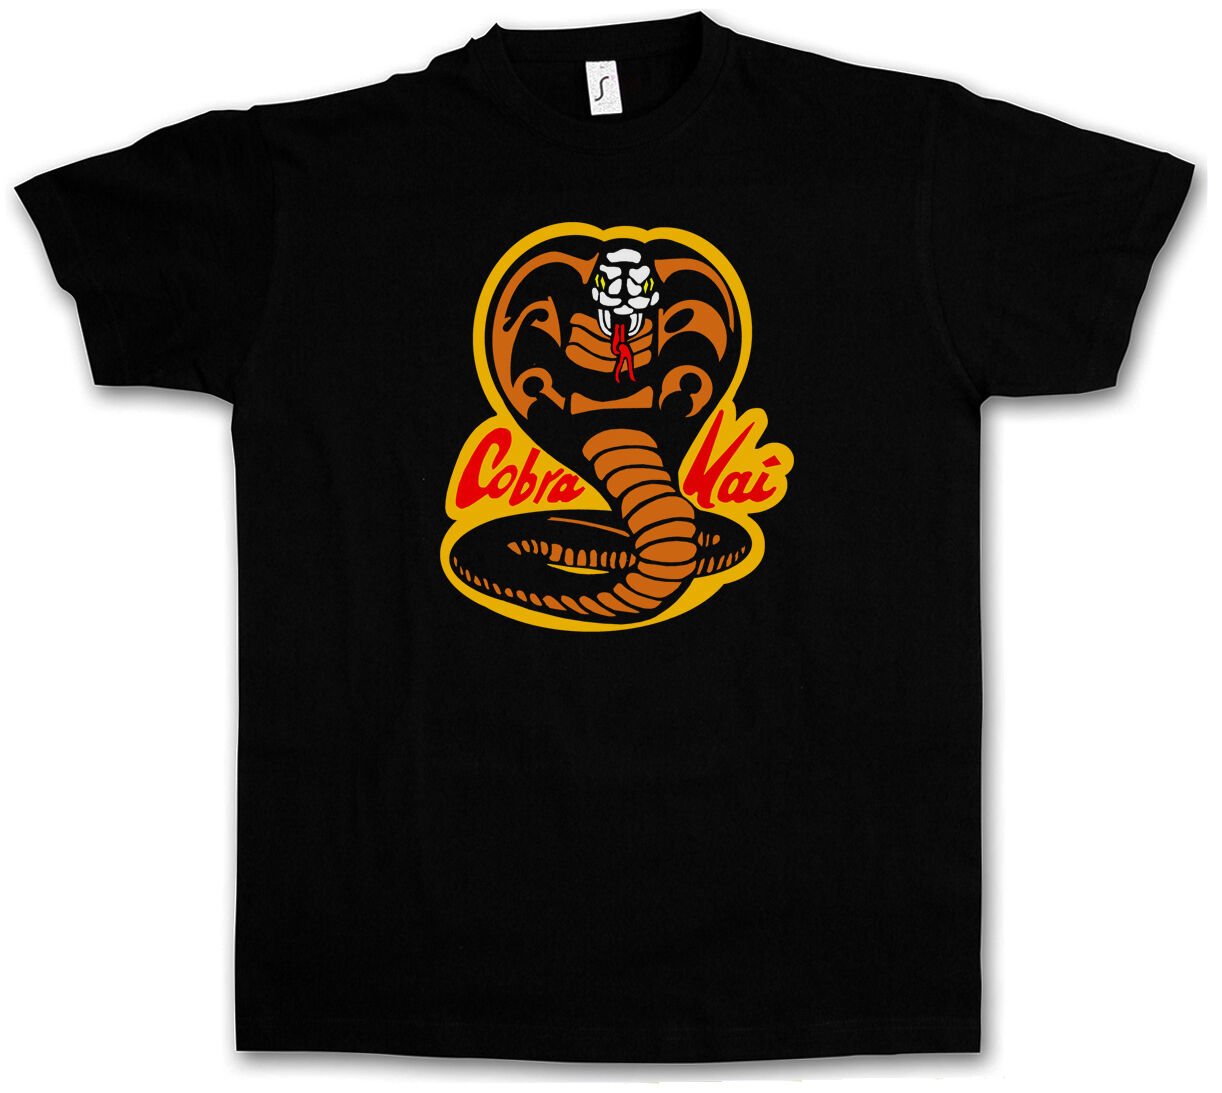 KAI DOJO T-SHIRT - Karate Kid Movie Retro Martial Arts Shirt image